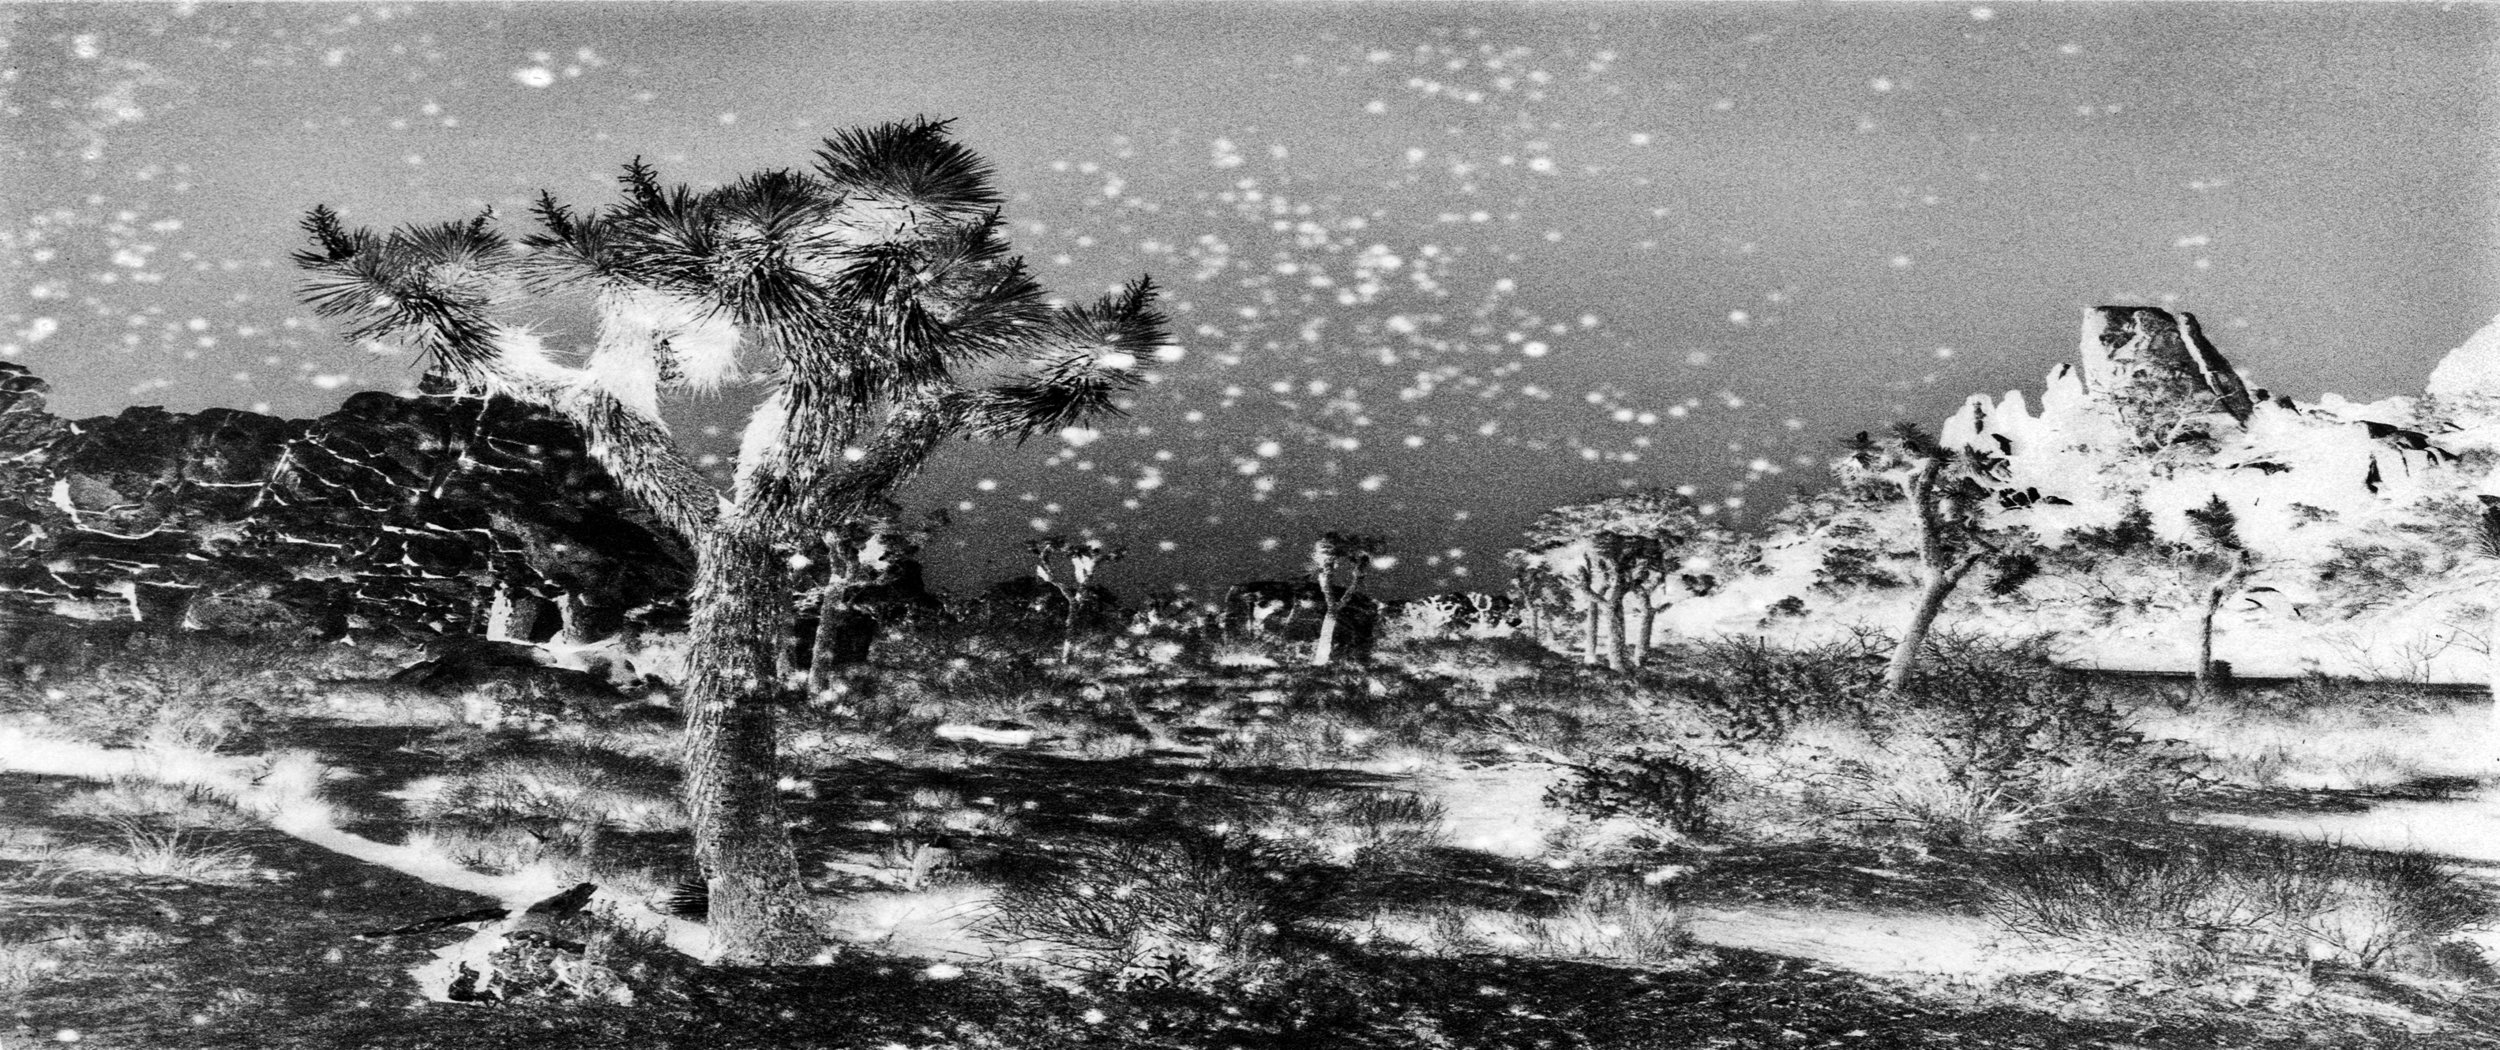 JoshuaTreeInfrared#4.jpg